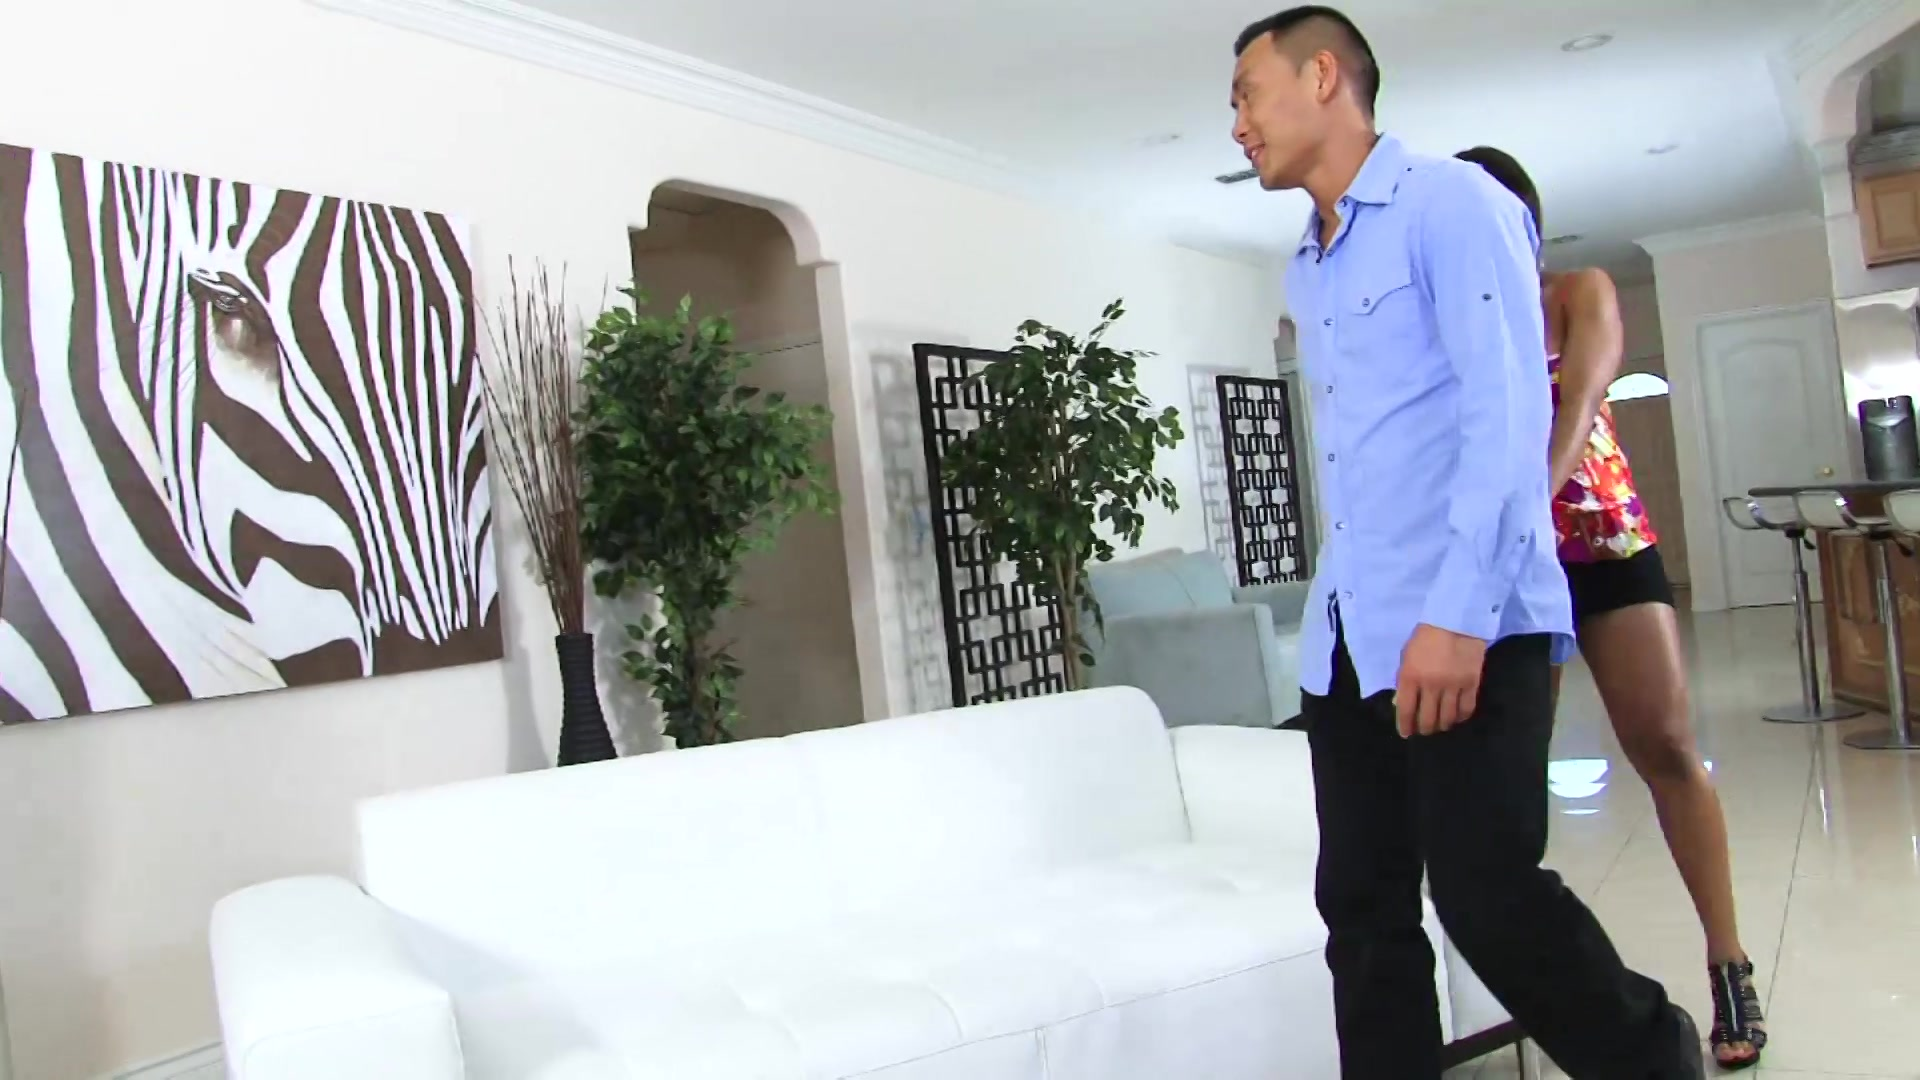 Tricked so horny he came twice bubble butt gh 6